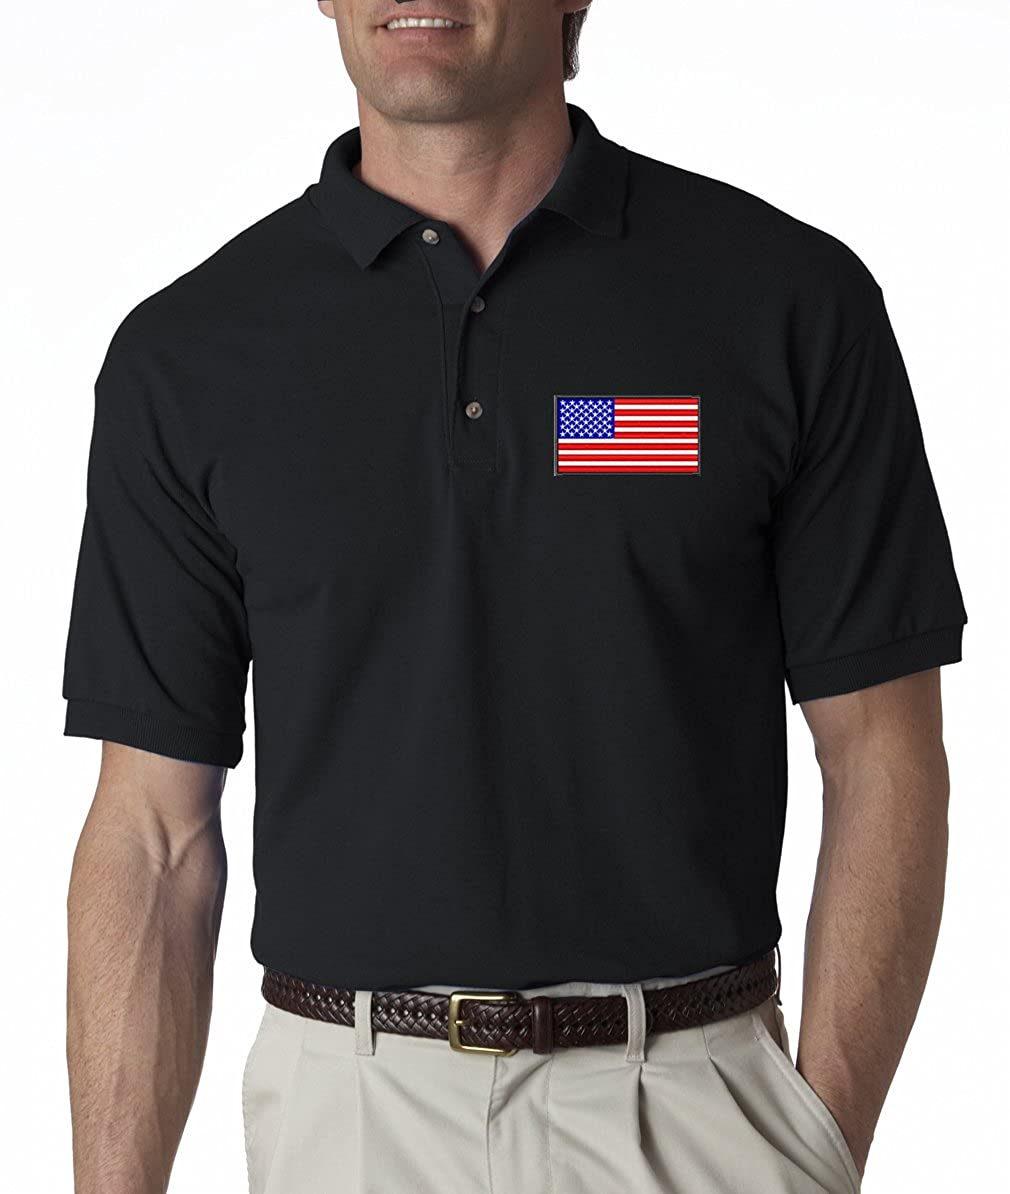 72ec7cd1 Amazon.com: A2S Addicted2shirts American Flag Chest Logo USA Pride Embroidered  Polo Shirt S-3XL 8 Colors: Clothing